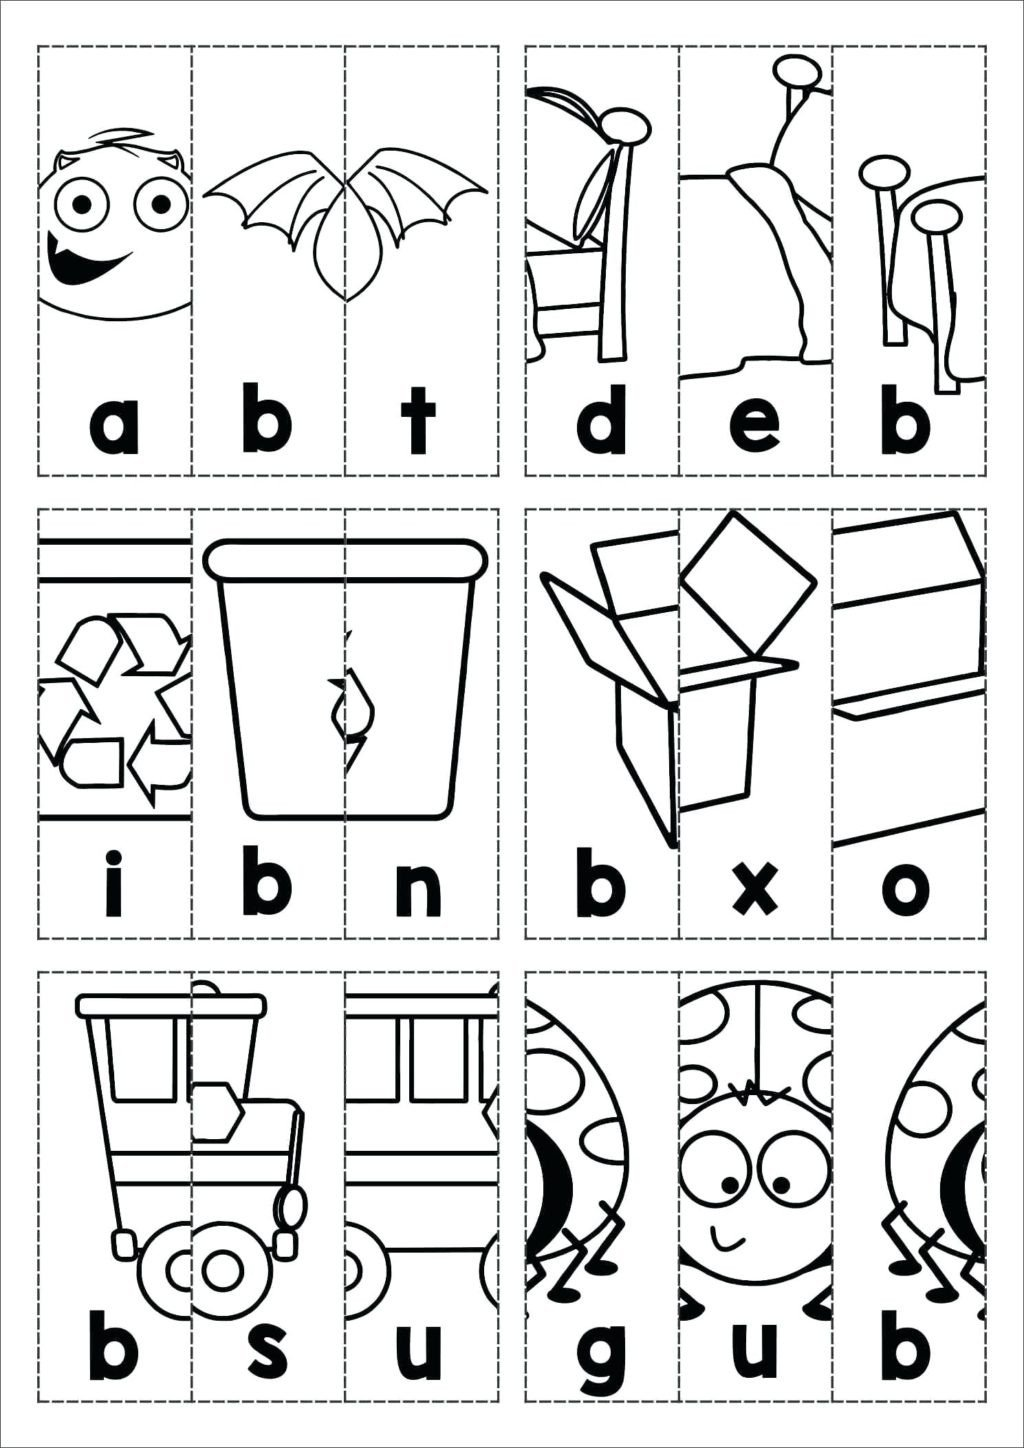 reading worksheets for kindergarten tremendous photo ideas free cvc passages words worksheet phonics letter of the week 1024x1448